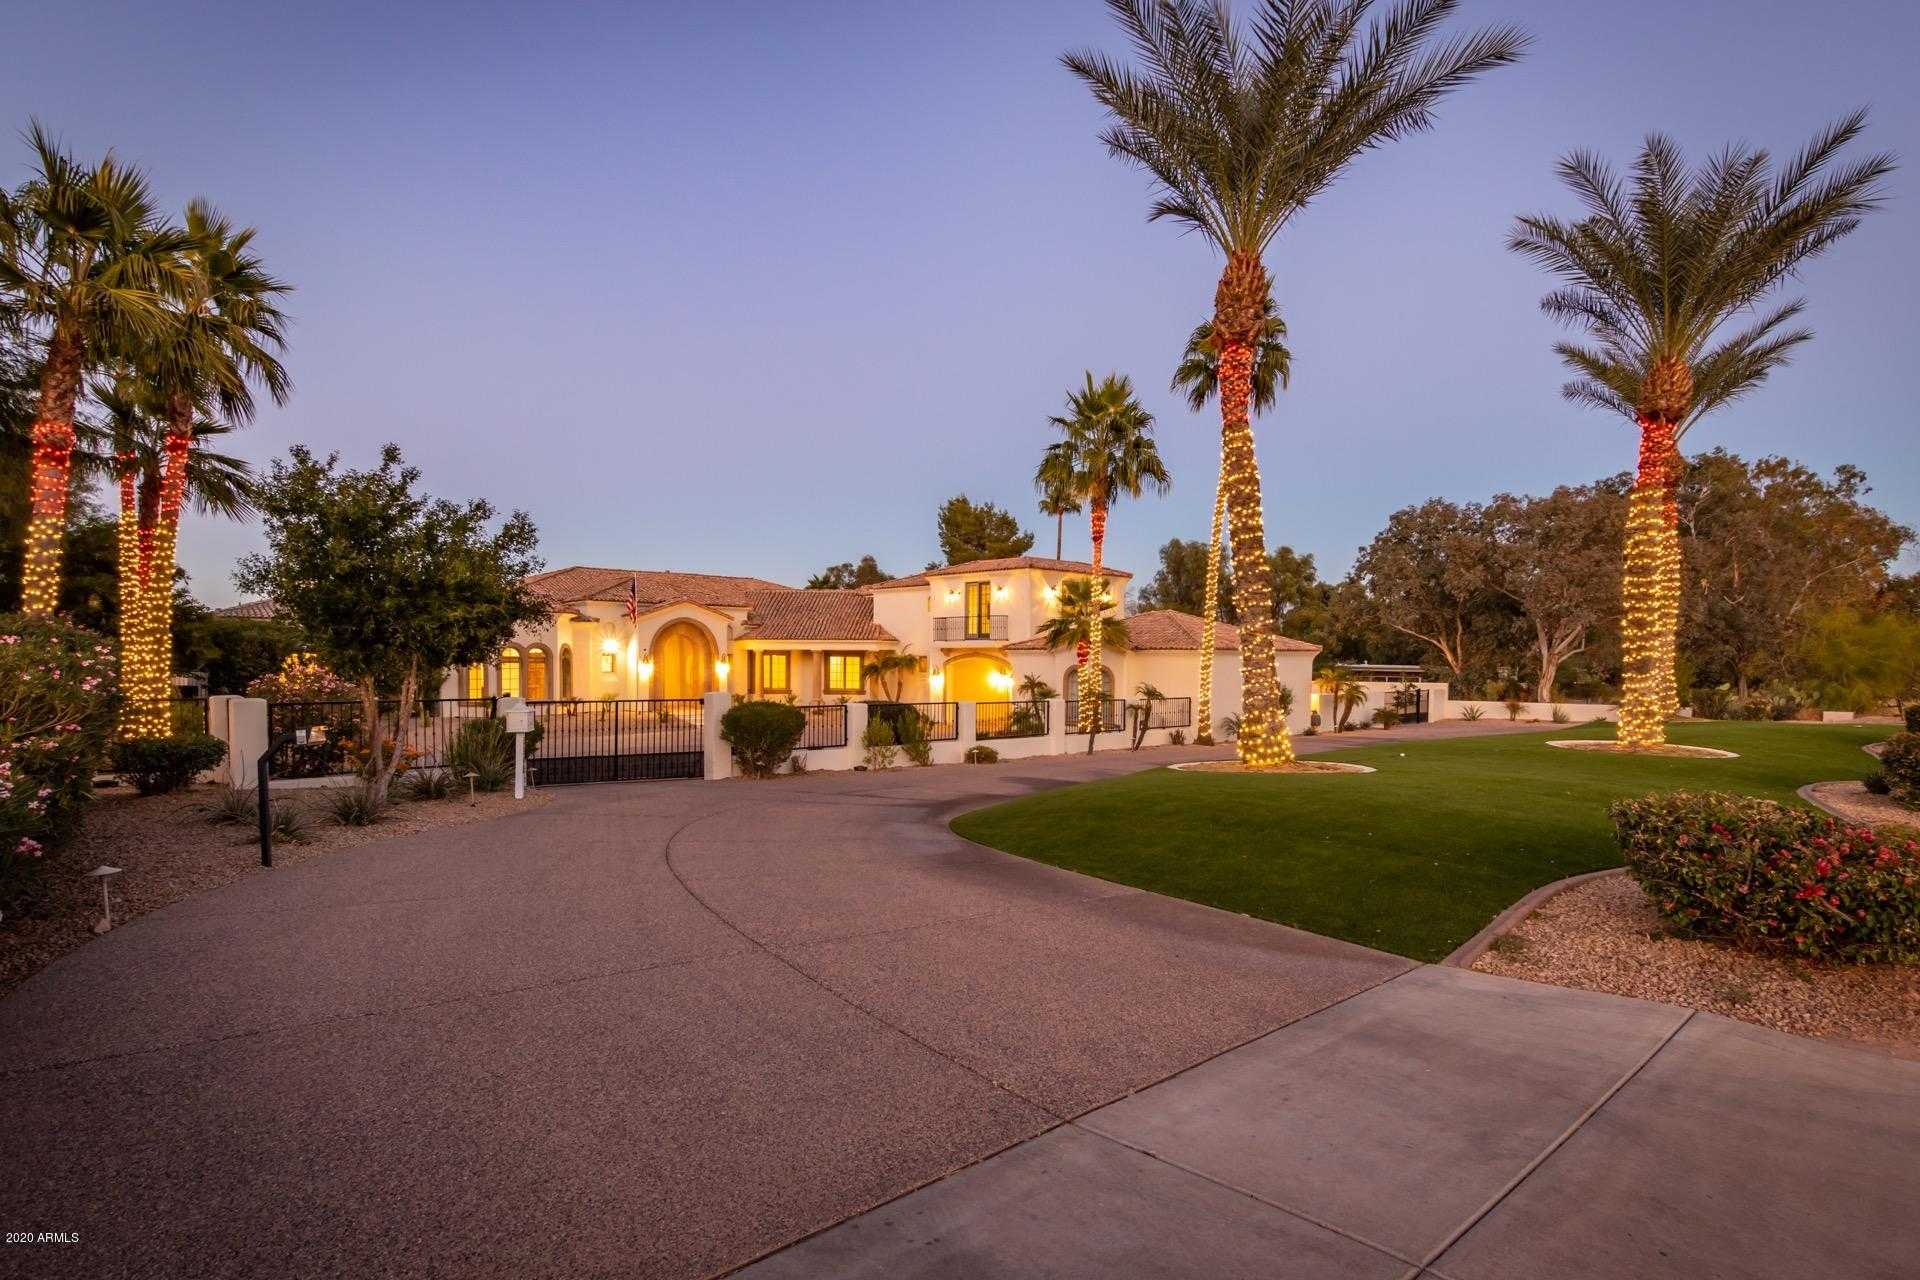 $3,499,000 - 6Br/7Ba - Home for Sale in George Portnoff Estates 1, Paradise Valley